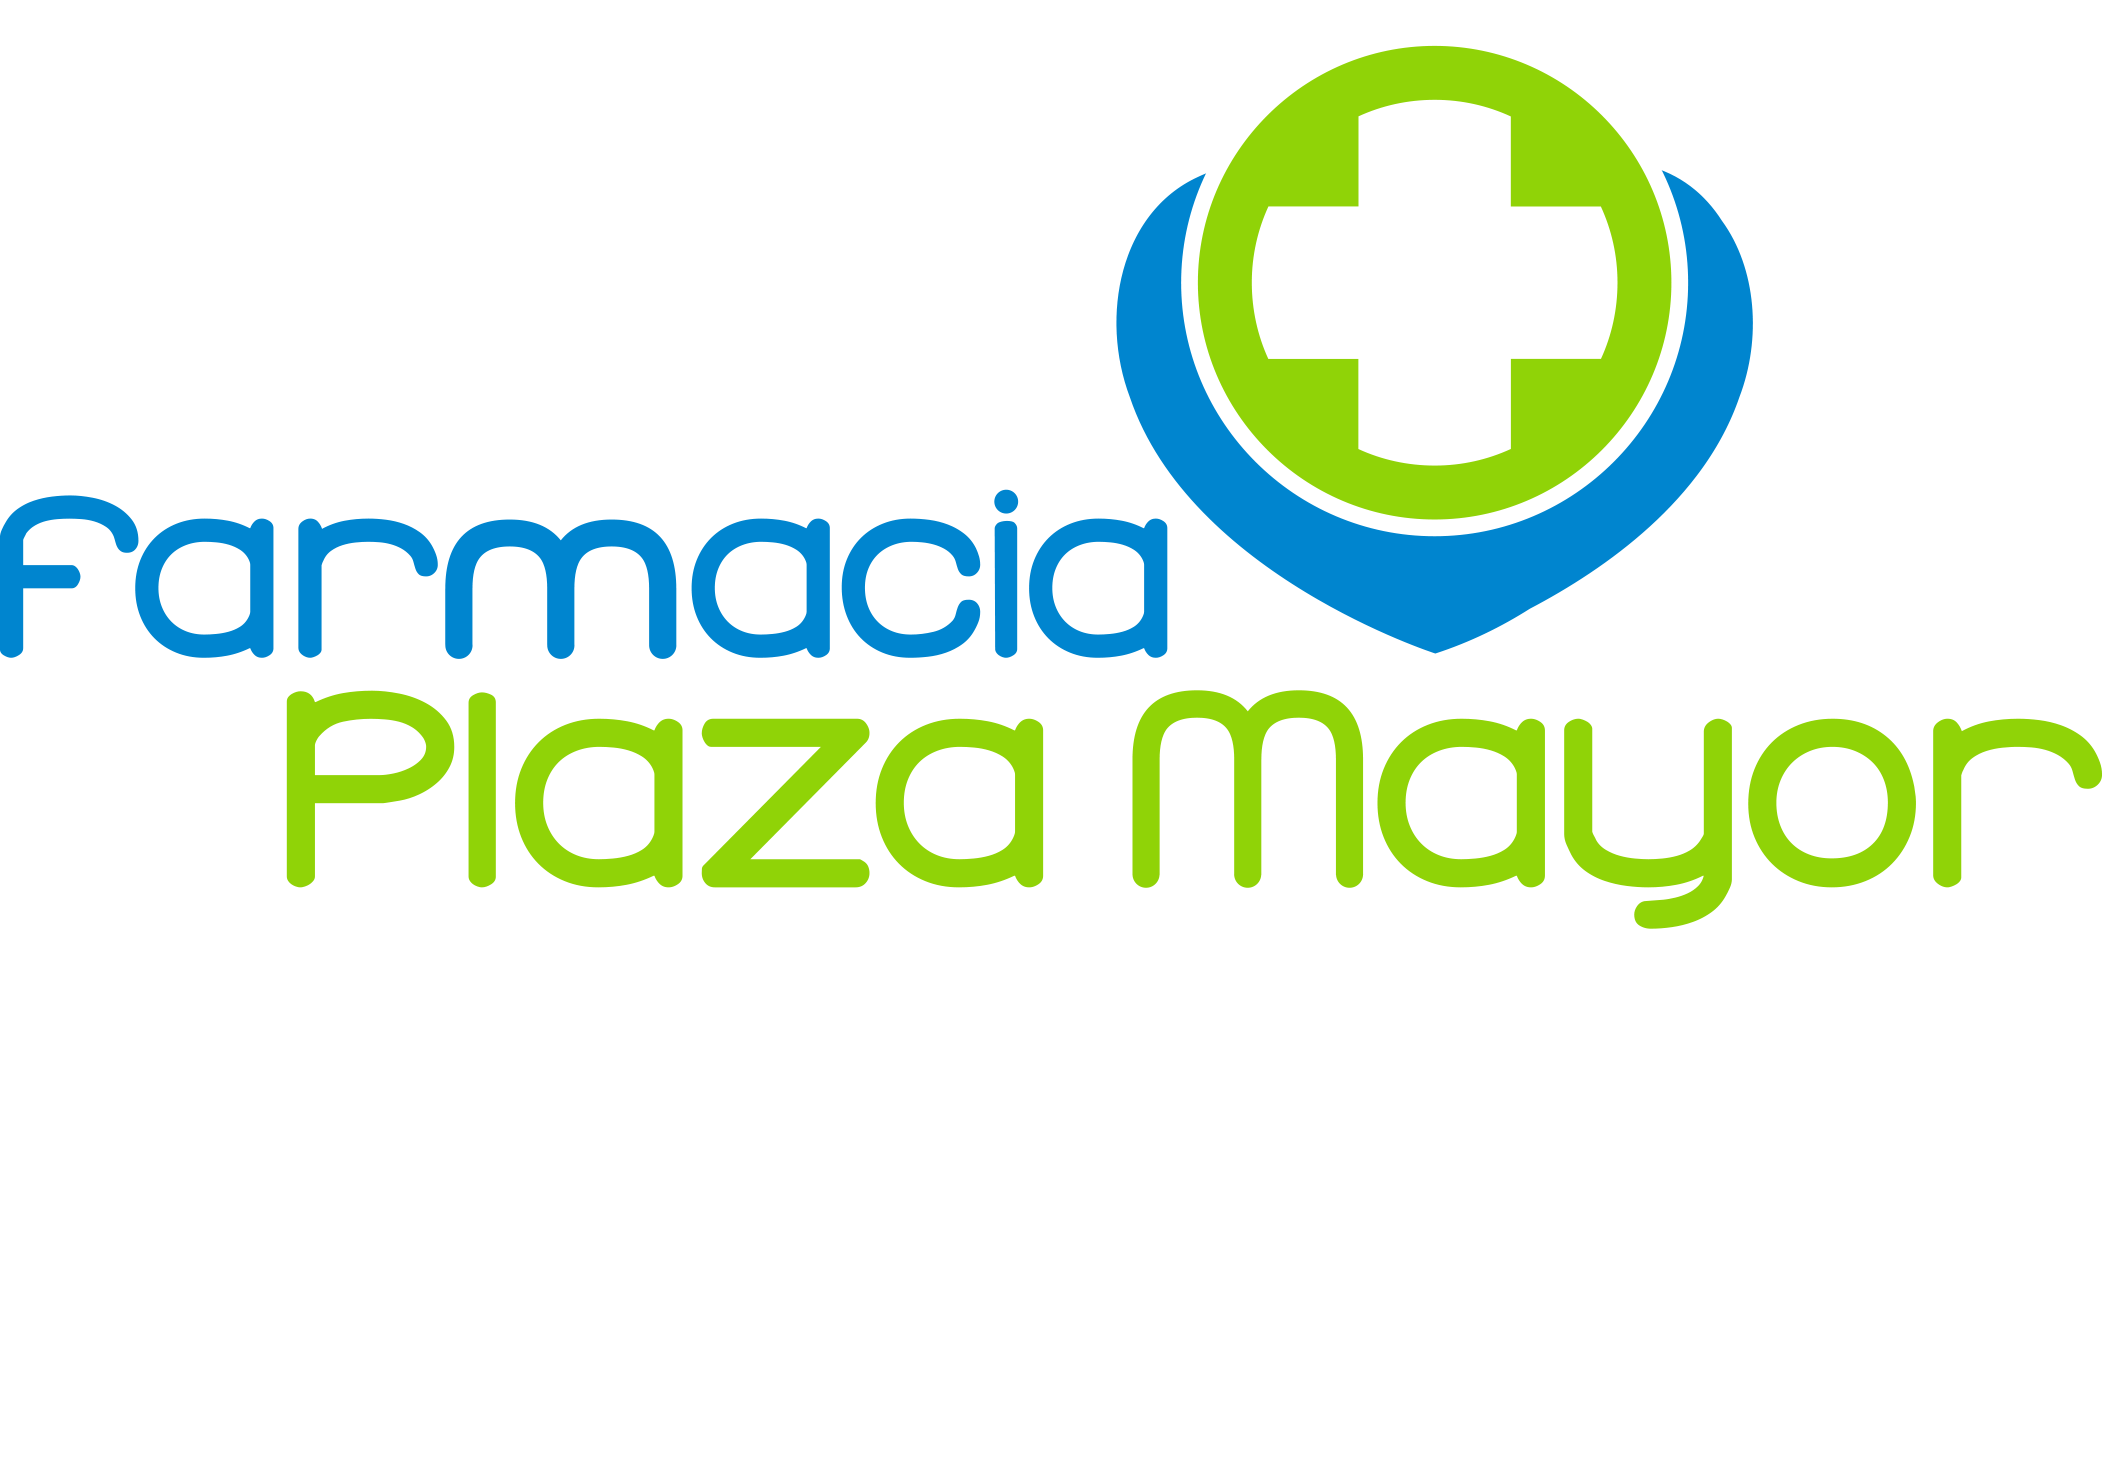 LOGO FCIA PLAZA MAYOR